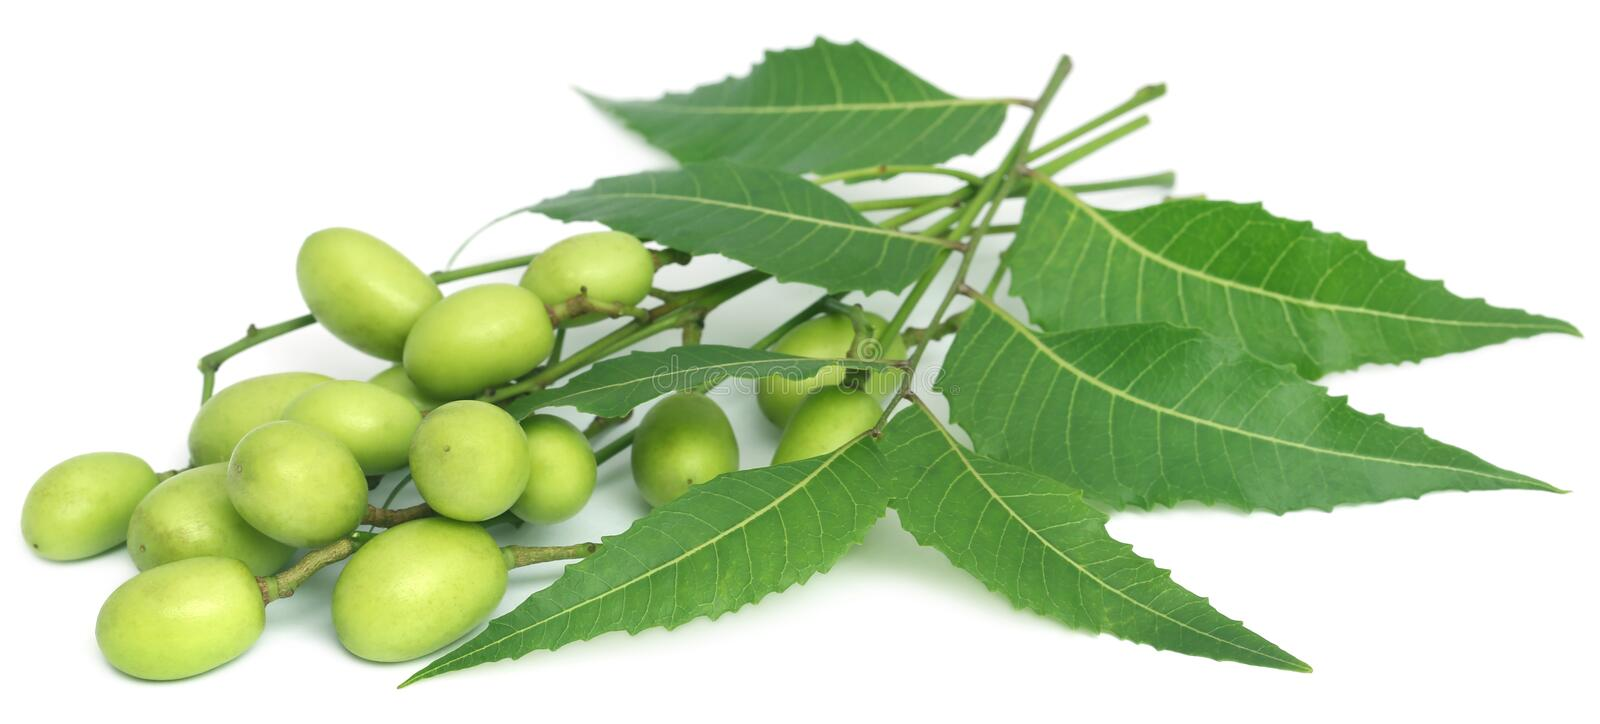 Neem Stock Images - Download 2,746 Royalty Free Photos